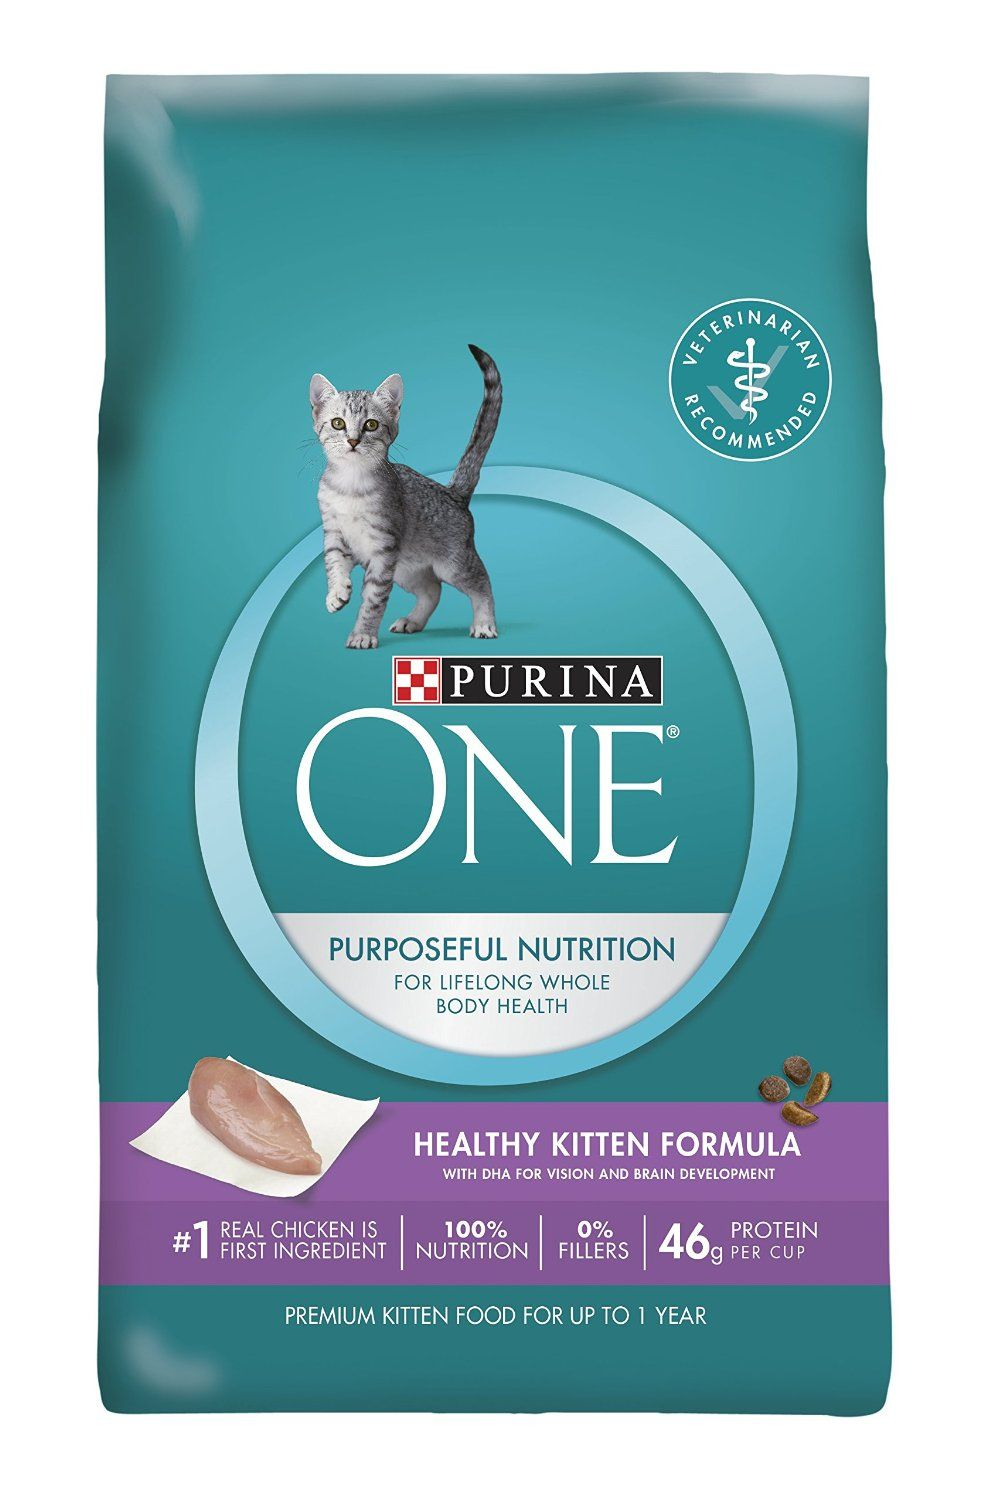 Purina One Healthy Kitten Formula Dry Cat Food Startling Review Available Here Cat Food Kitten Food Cat Food Best Cat Food